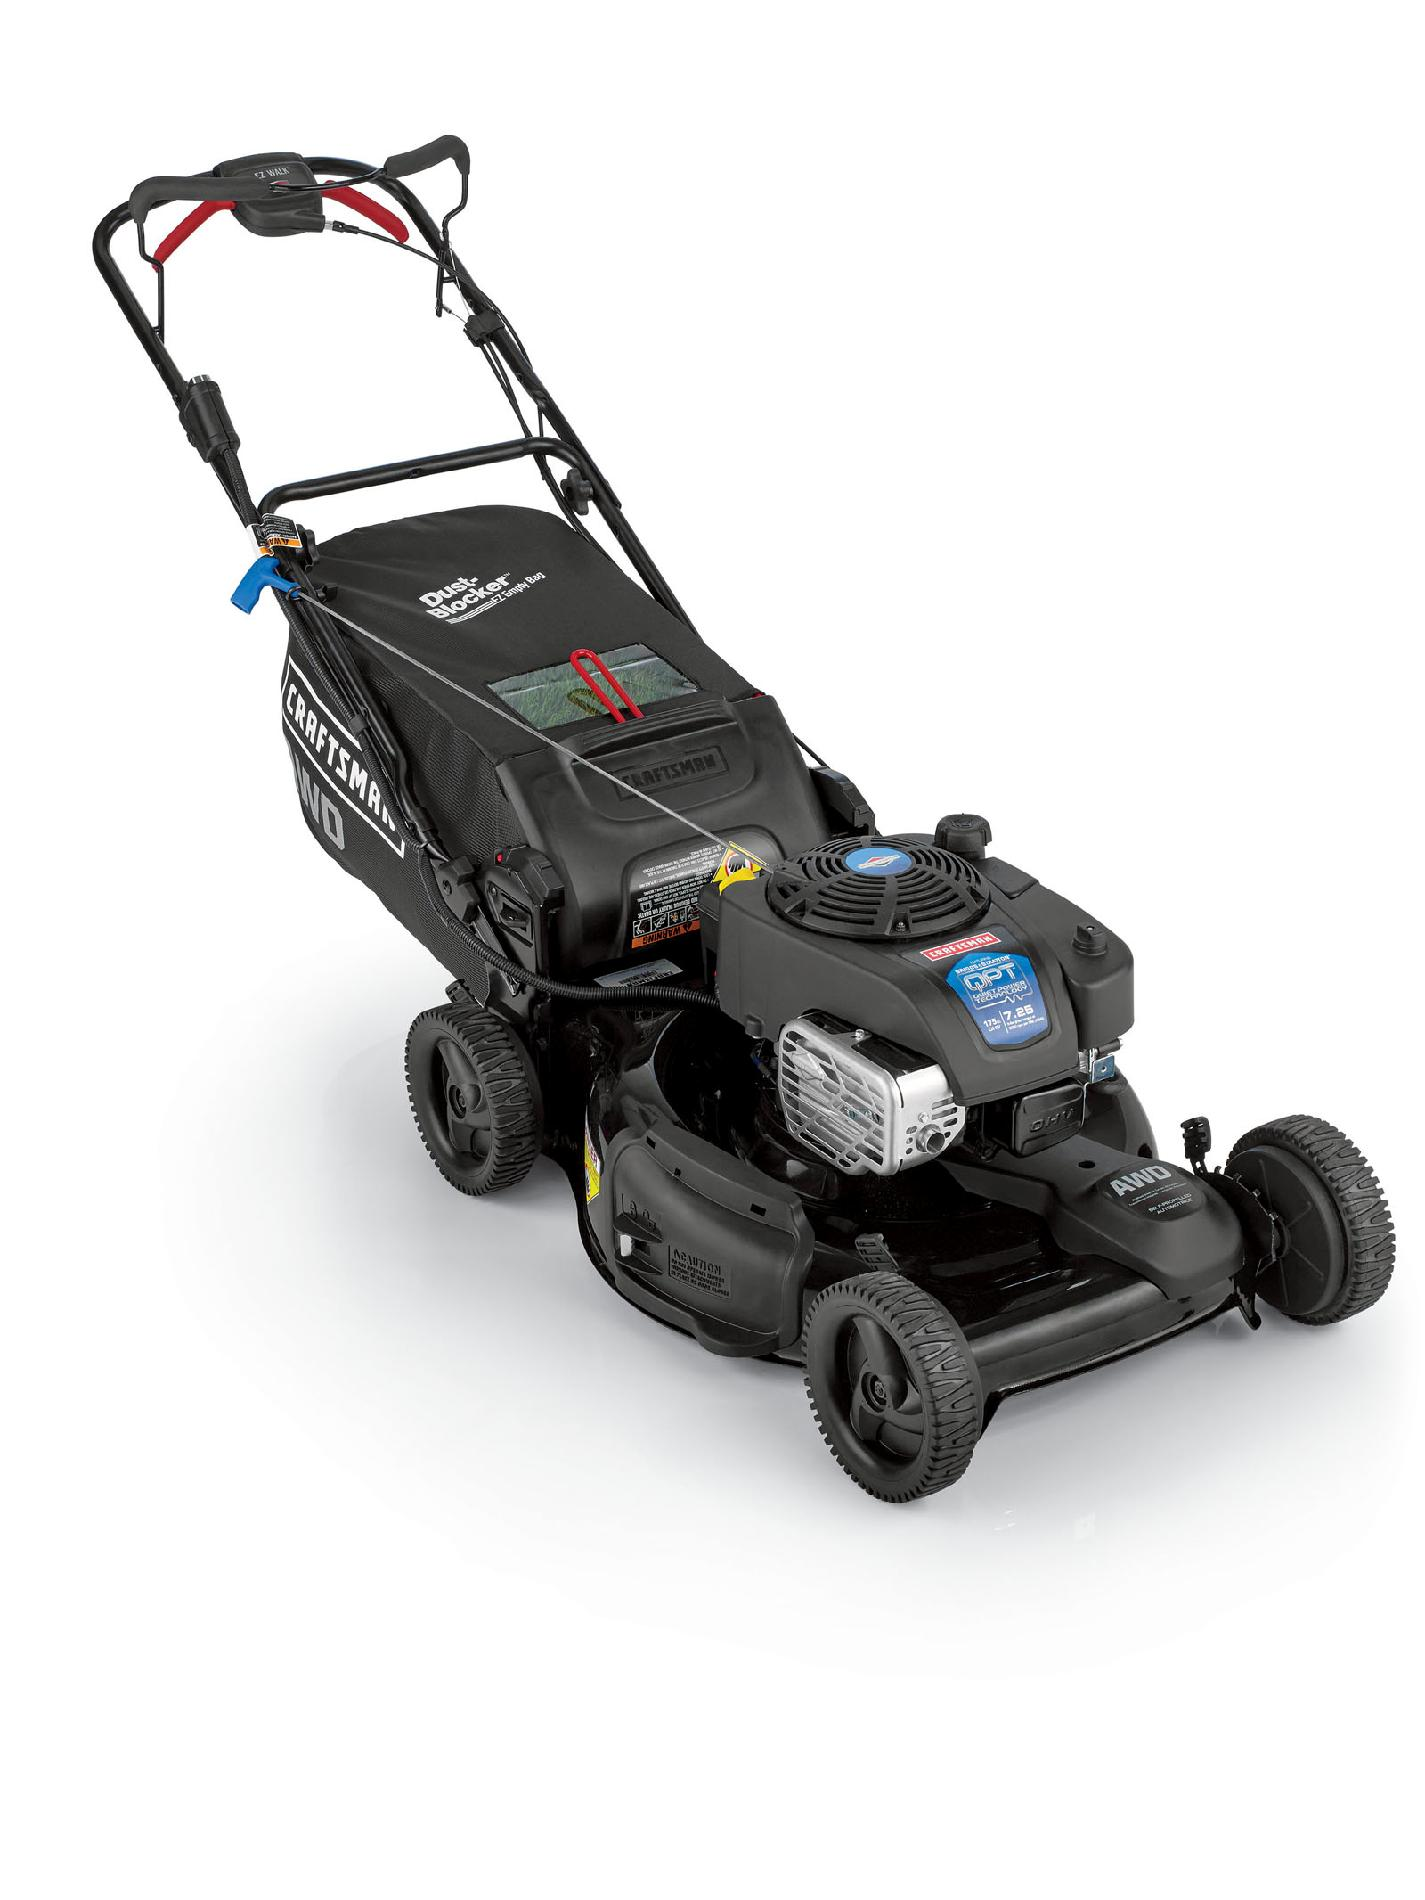 "Craftsman 175cc OHV Briggs & Stratton Quiet Power Technology Engine, 22"" All-Wheel Drive Lawn Mower"